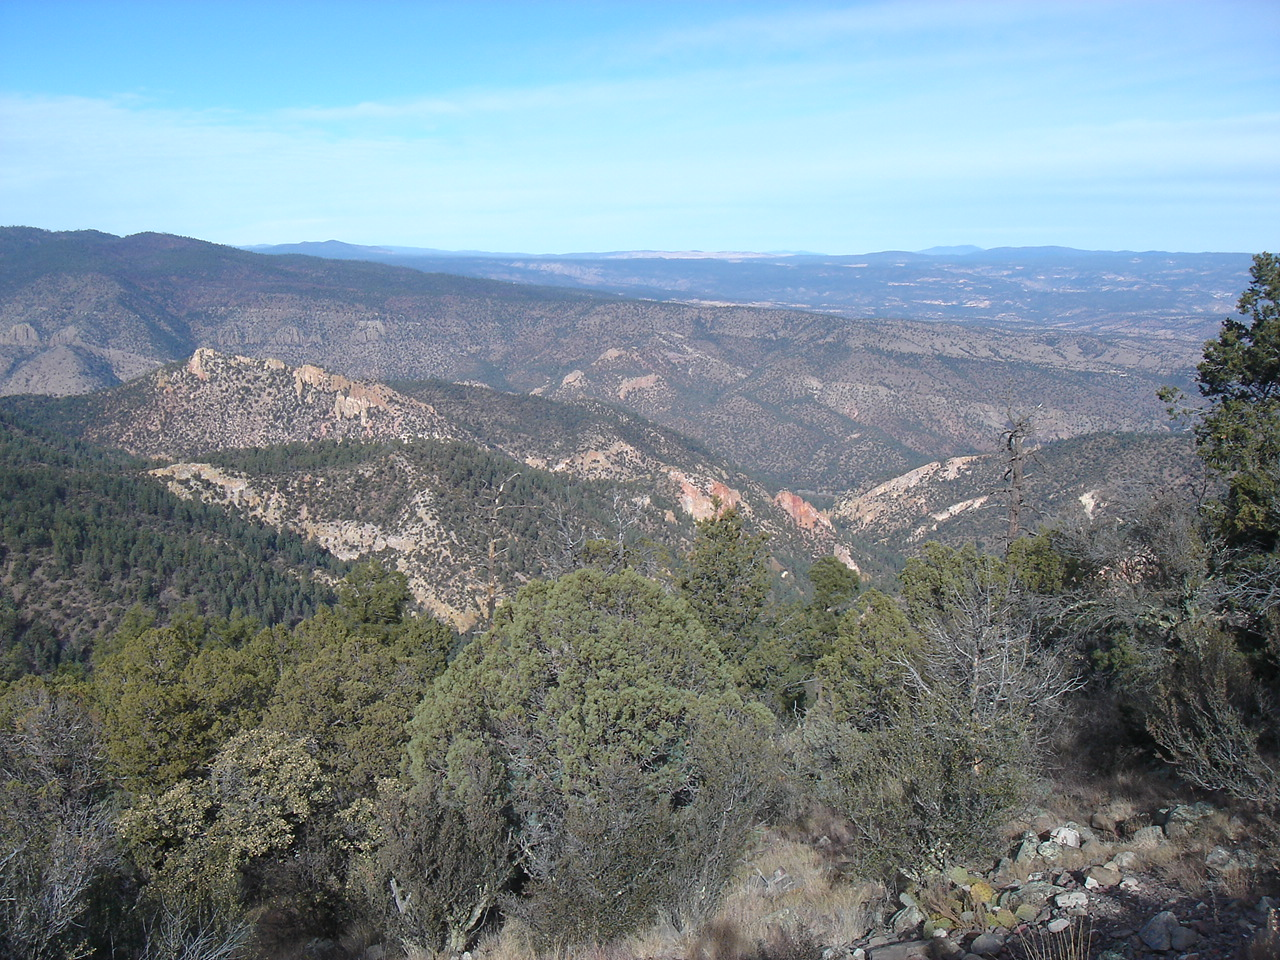 December 15, The Gila Wilderness, NM